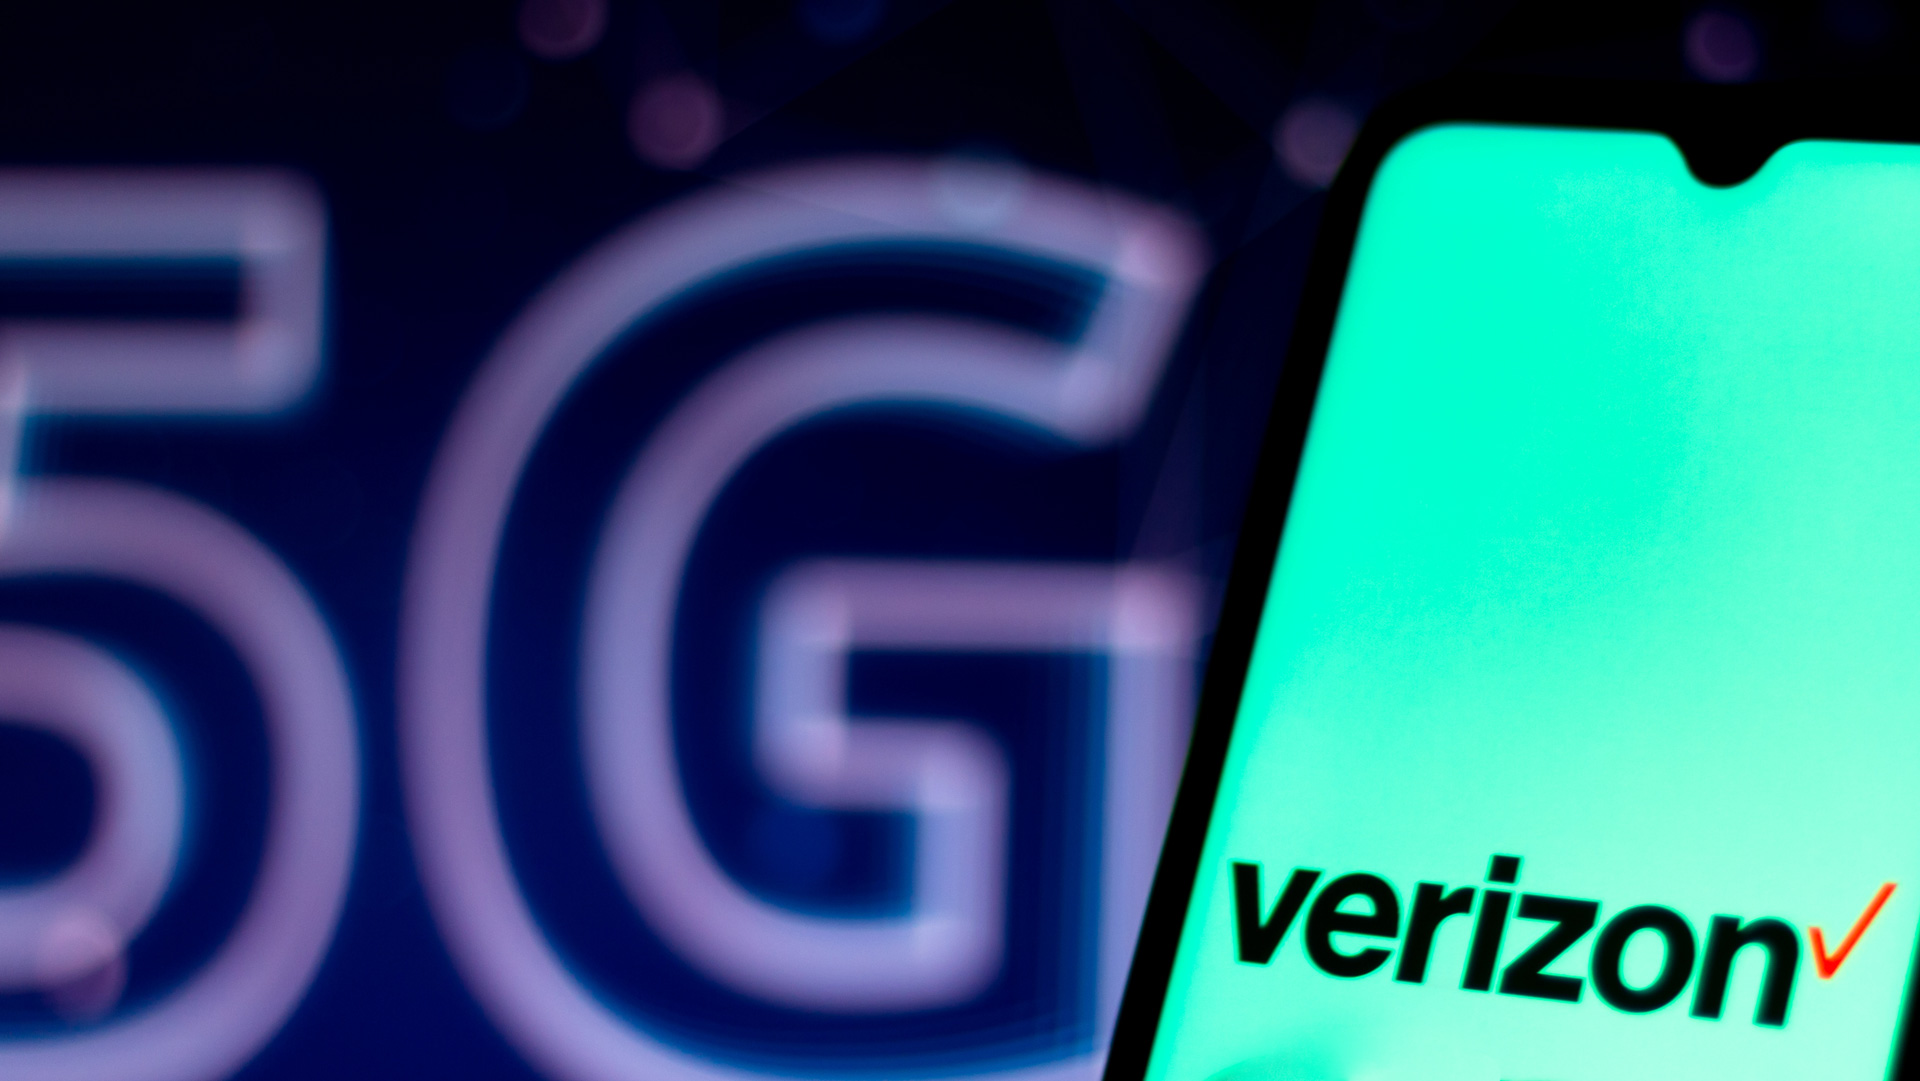 Verizon's partnership with GE is its latest effort to experiment with industrial 5G.